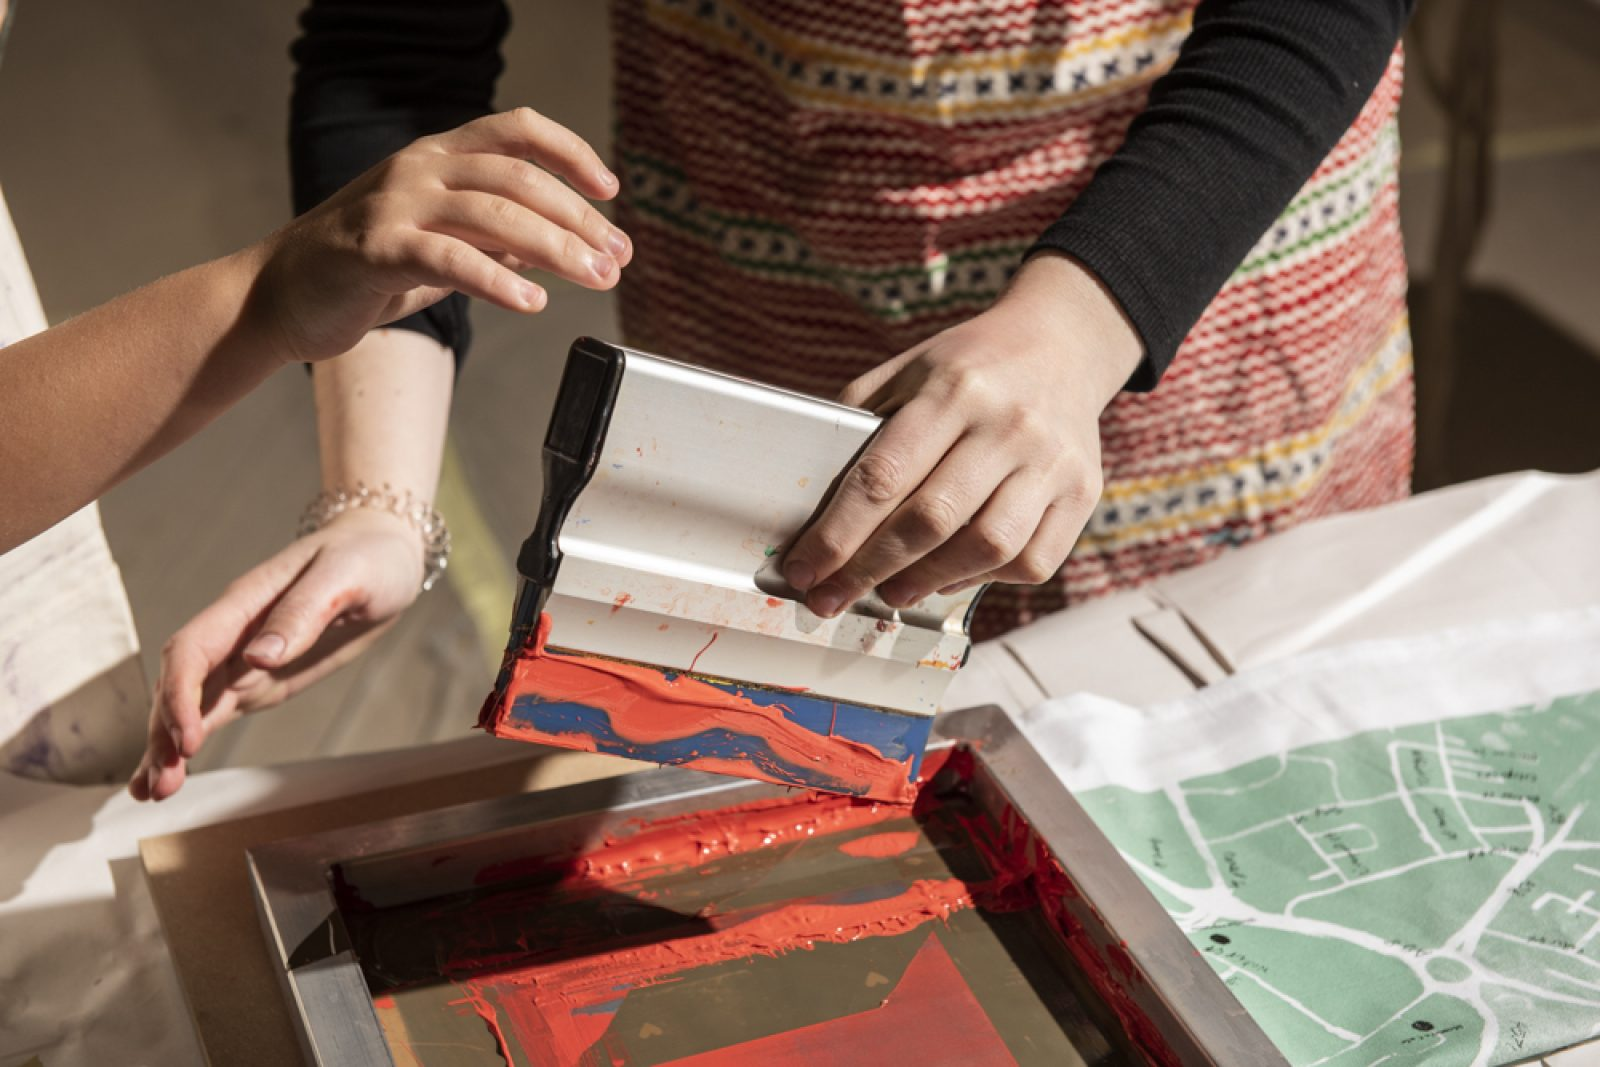 Two pairs of hands are screen printing. Next to the screen a piece of fabric with a map printed on it.